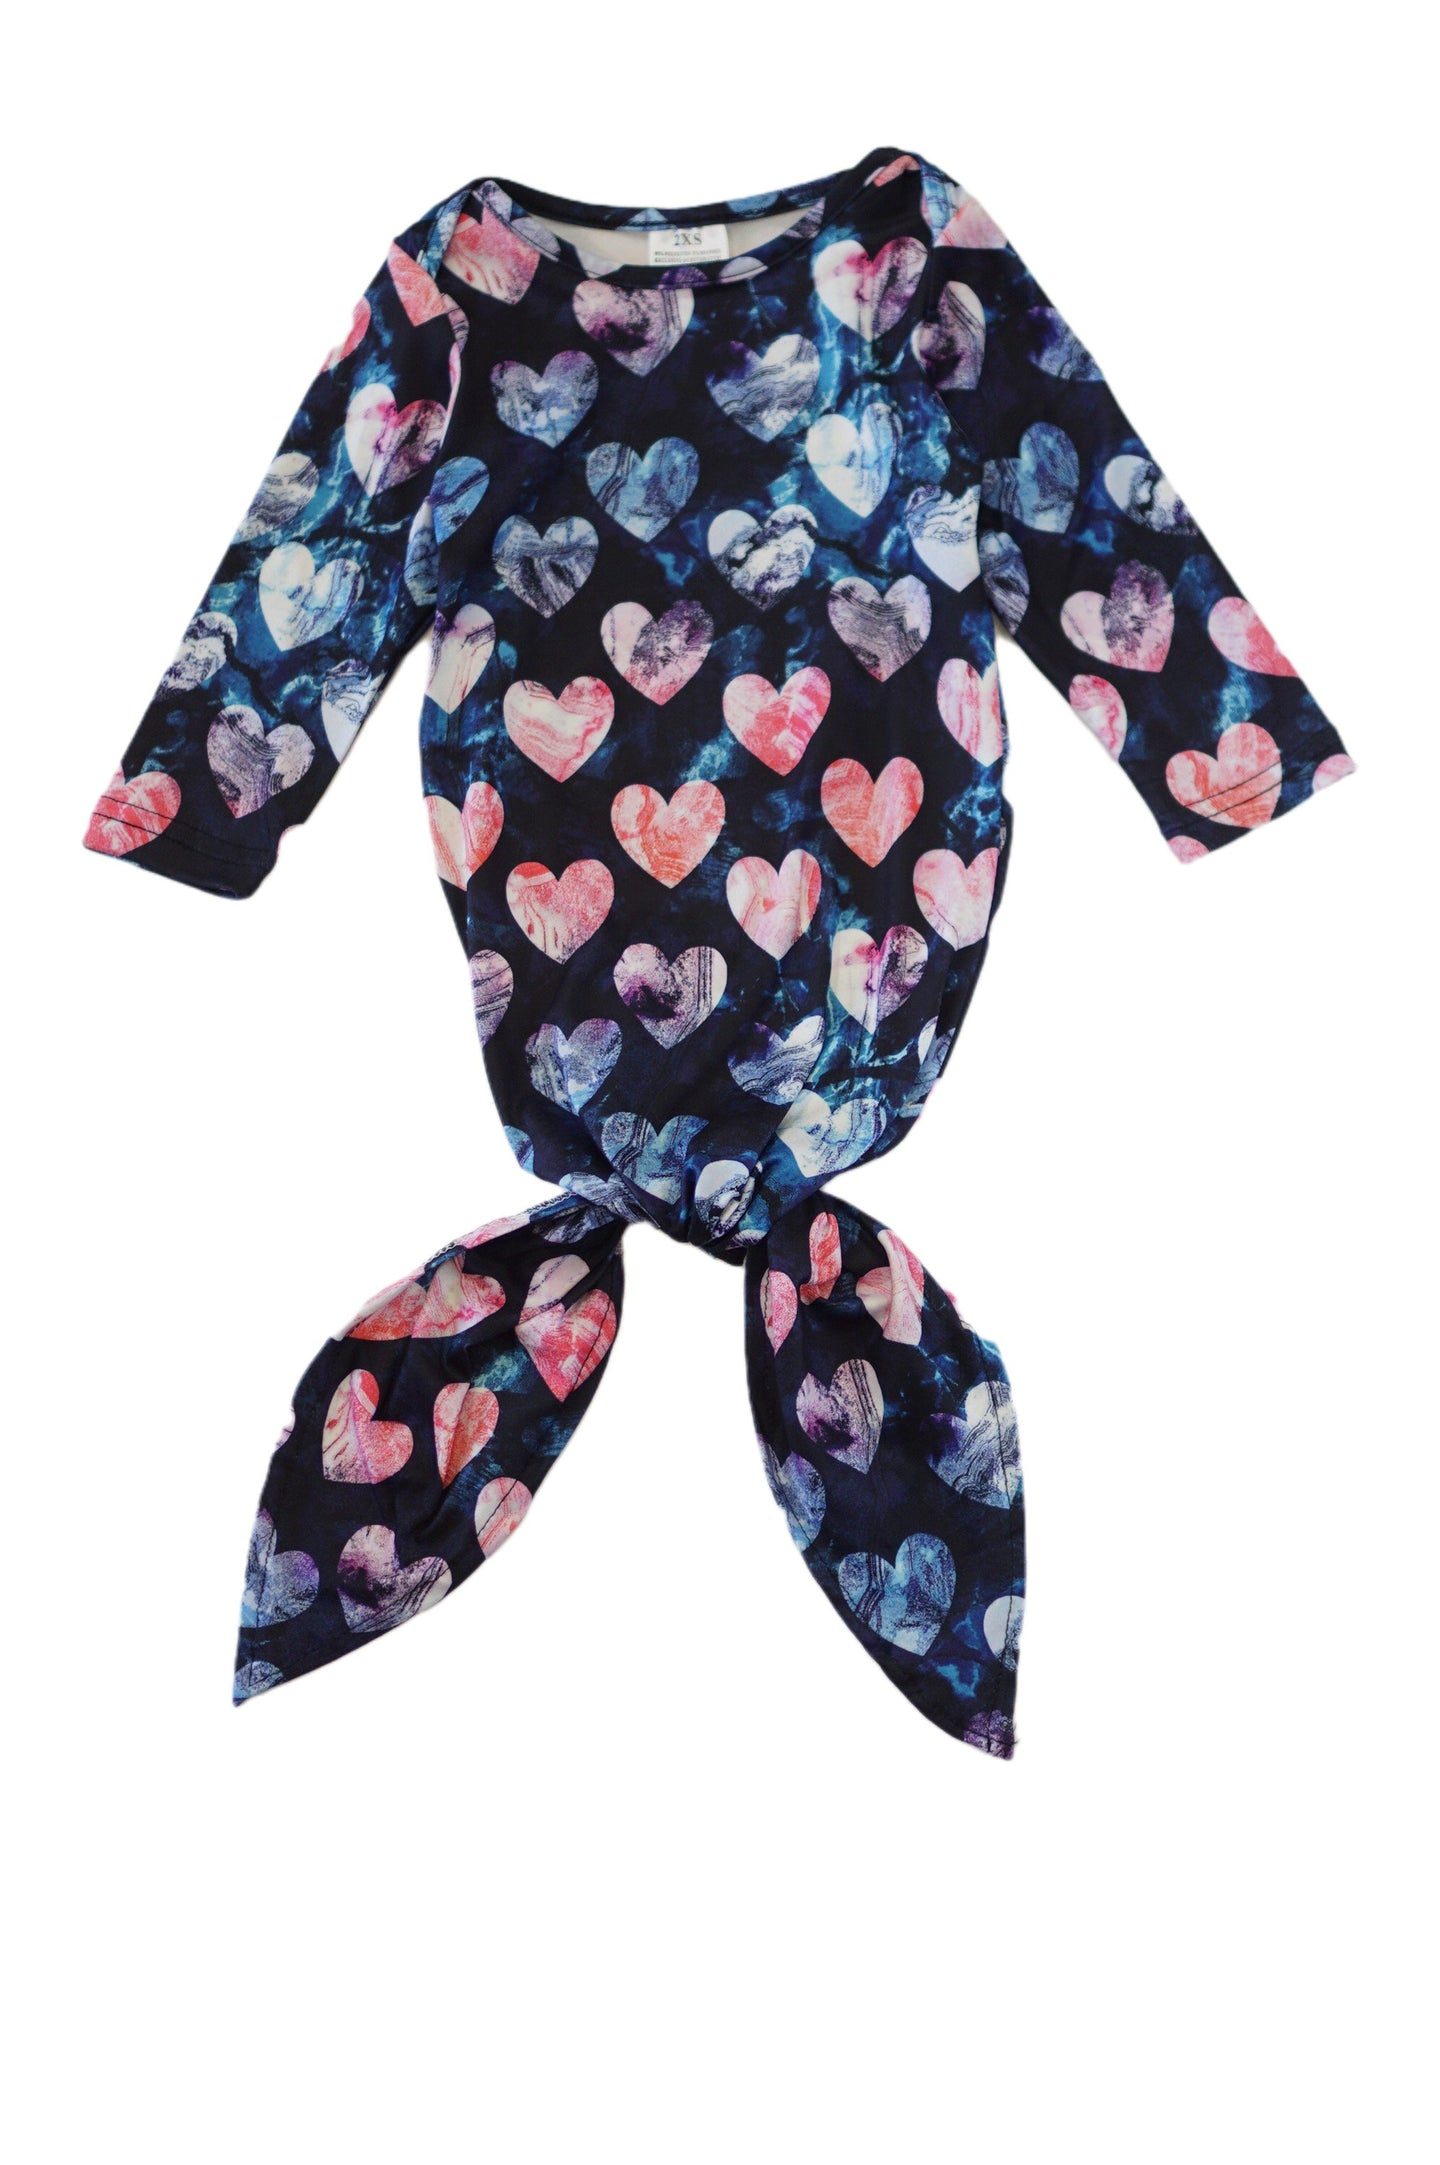 Tie dye hearts baby gown